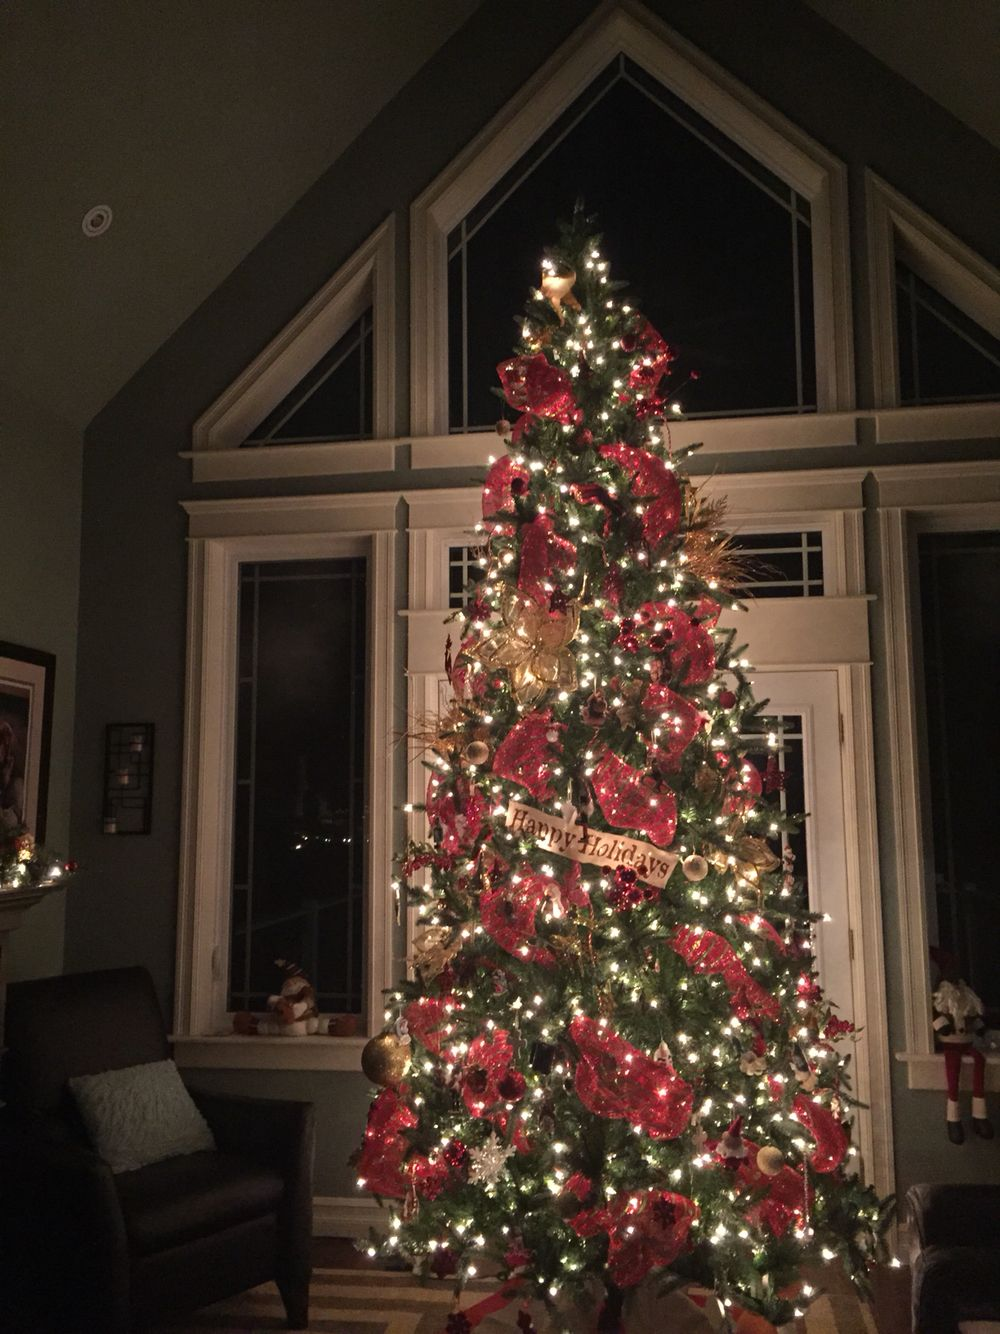 12 Foot Christmas Tree 12 Foot Christmas Tree Christmas Tree Rustic Christmas Tree